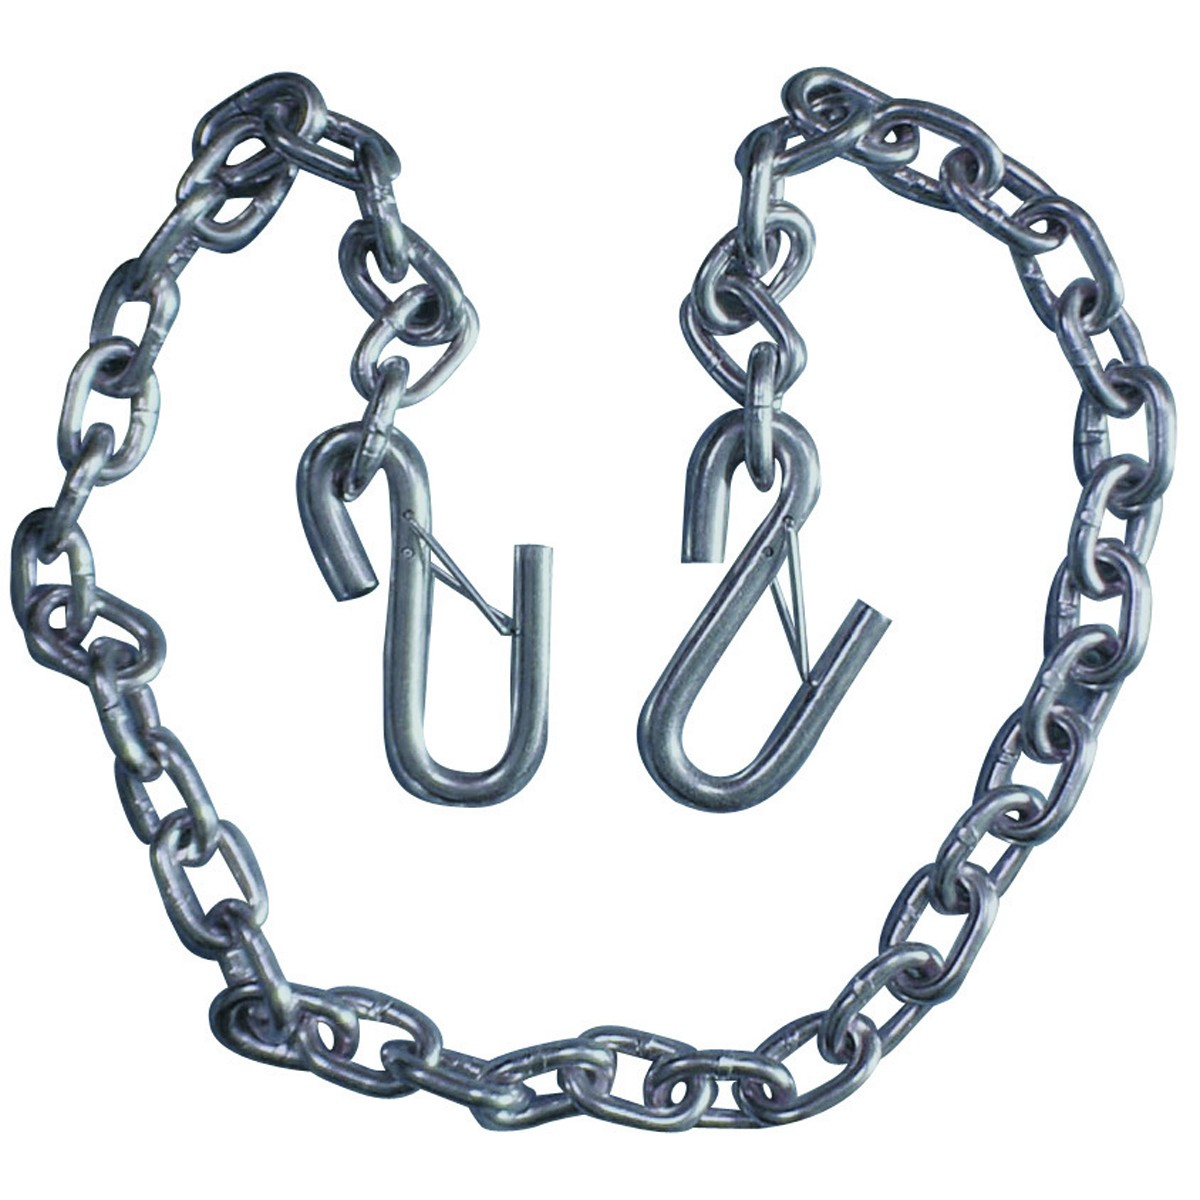 Safety Trailer Chain On Samco Sales Inc